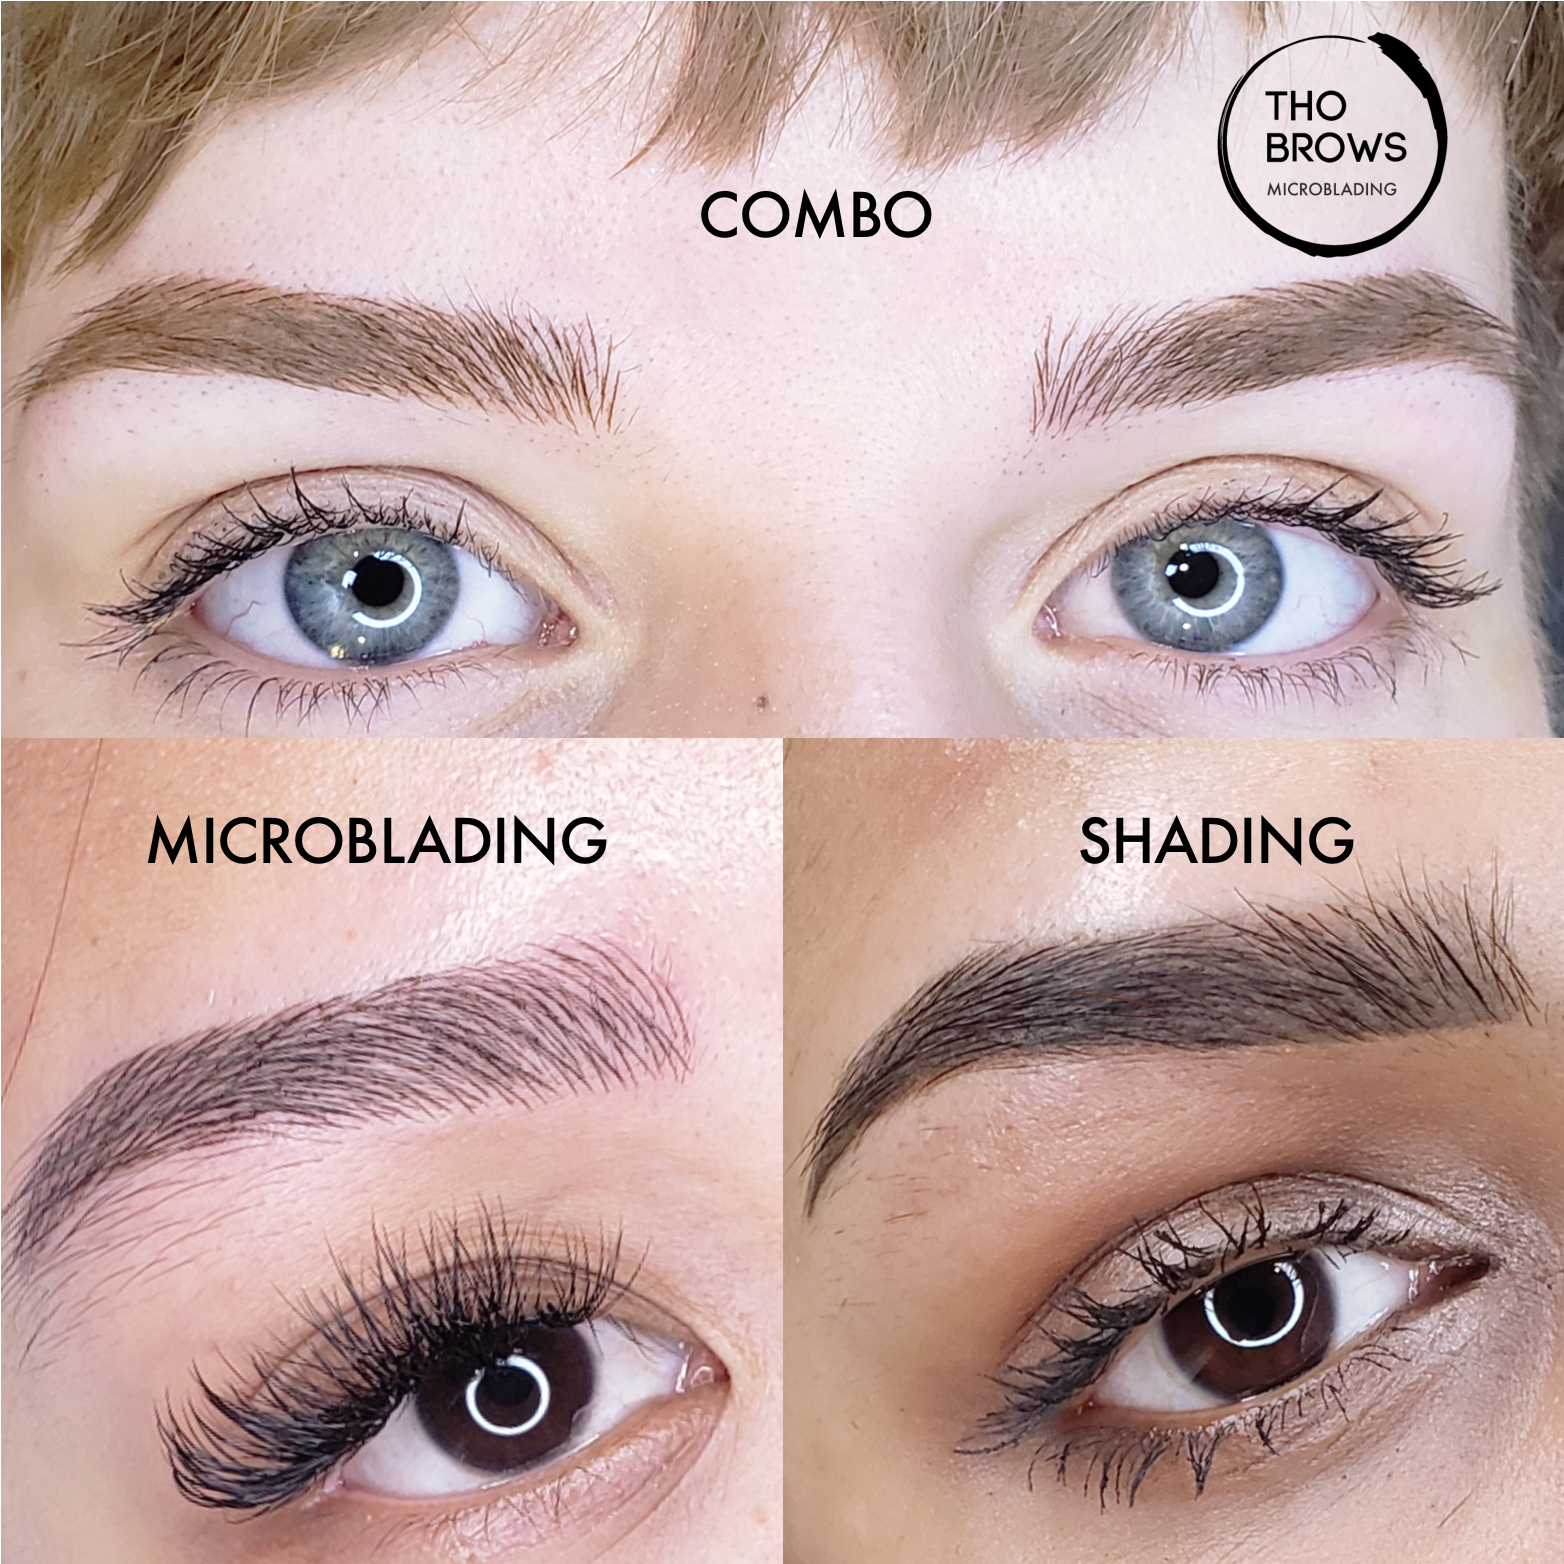 This chart  only applies for those who has  NEVER  get their brows tattooed or micro bladed.    If you have previously tattooed done elsewhere, a consultation is required as we don't know how much pigment has faded and if you have any scarring on your eyebrows.